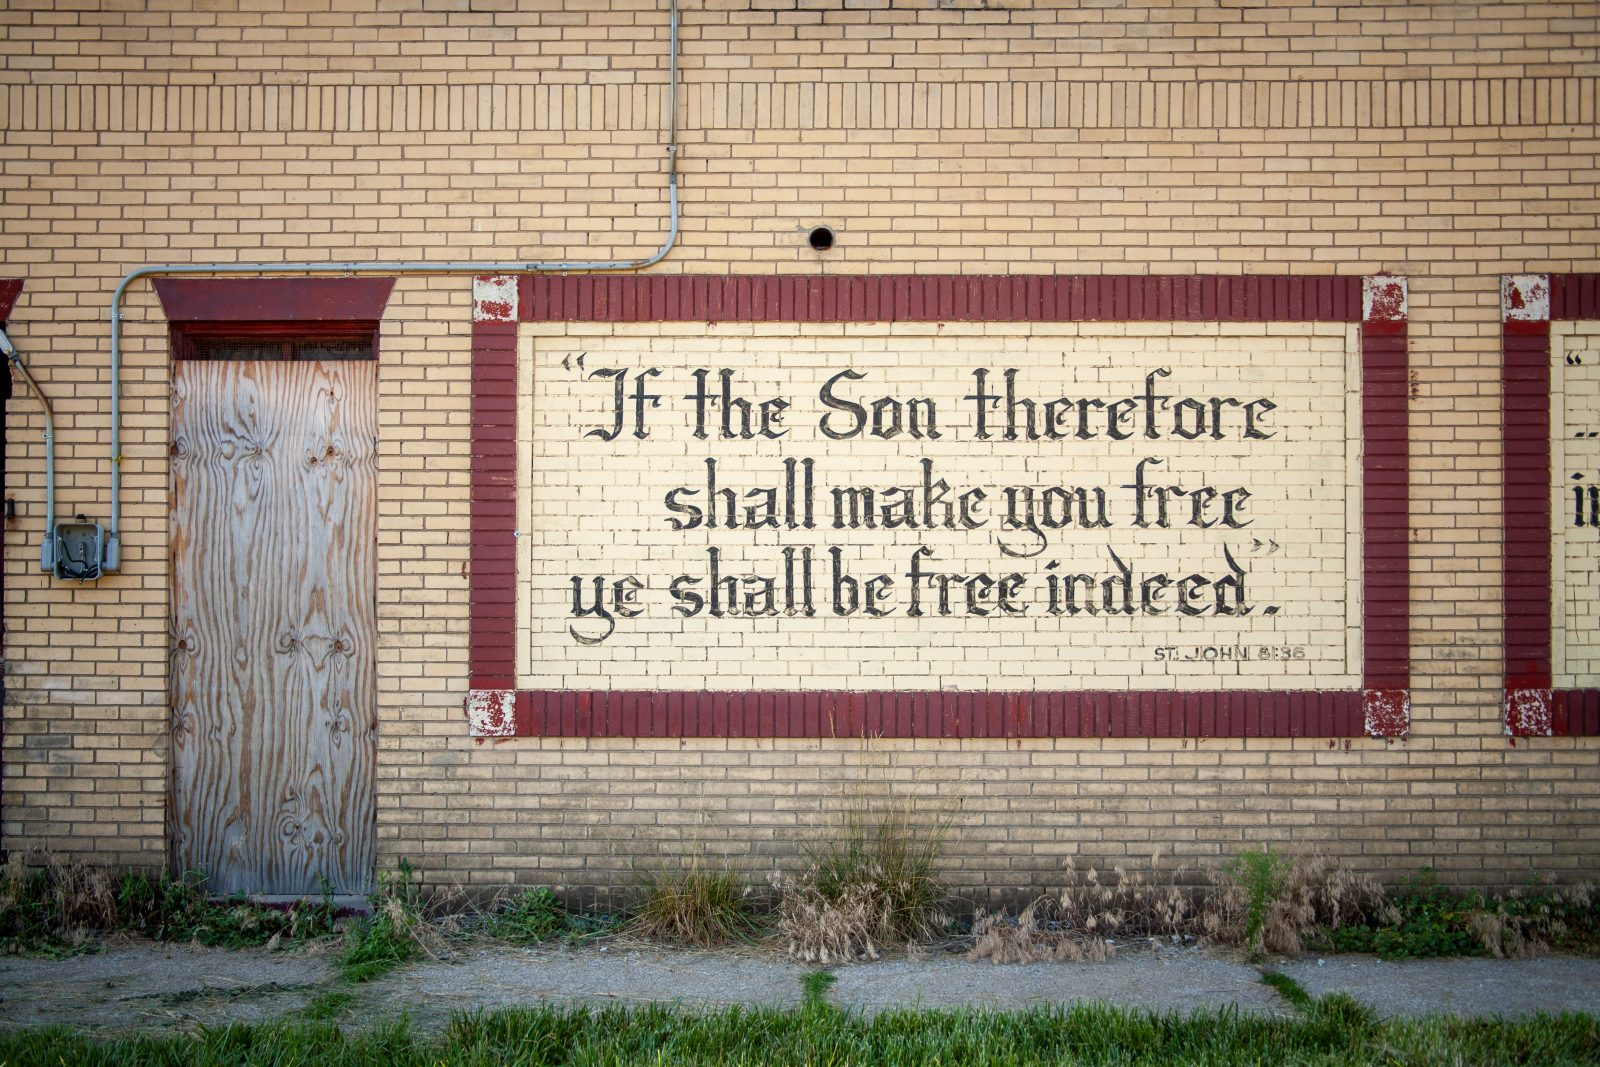 Bible verses on walls. Detroit, Michigan.